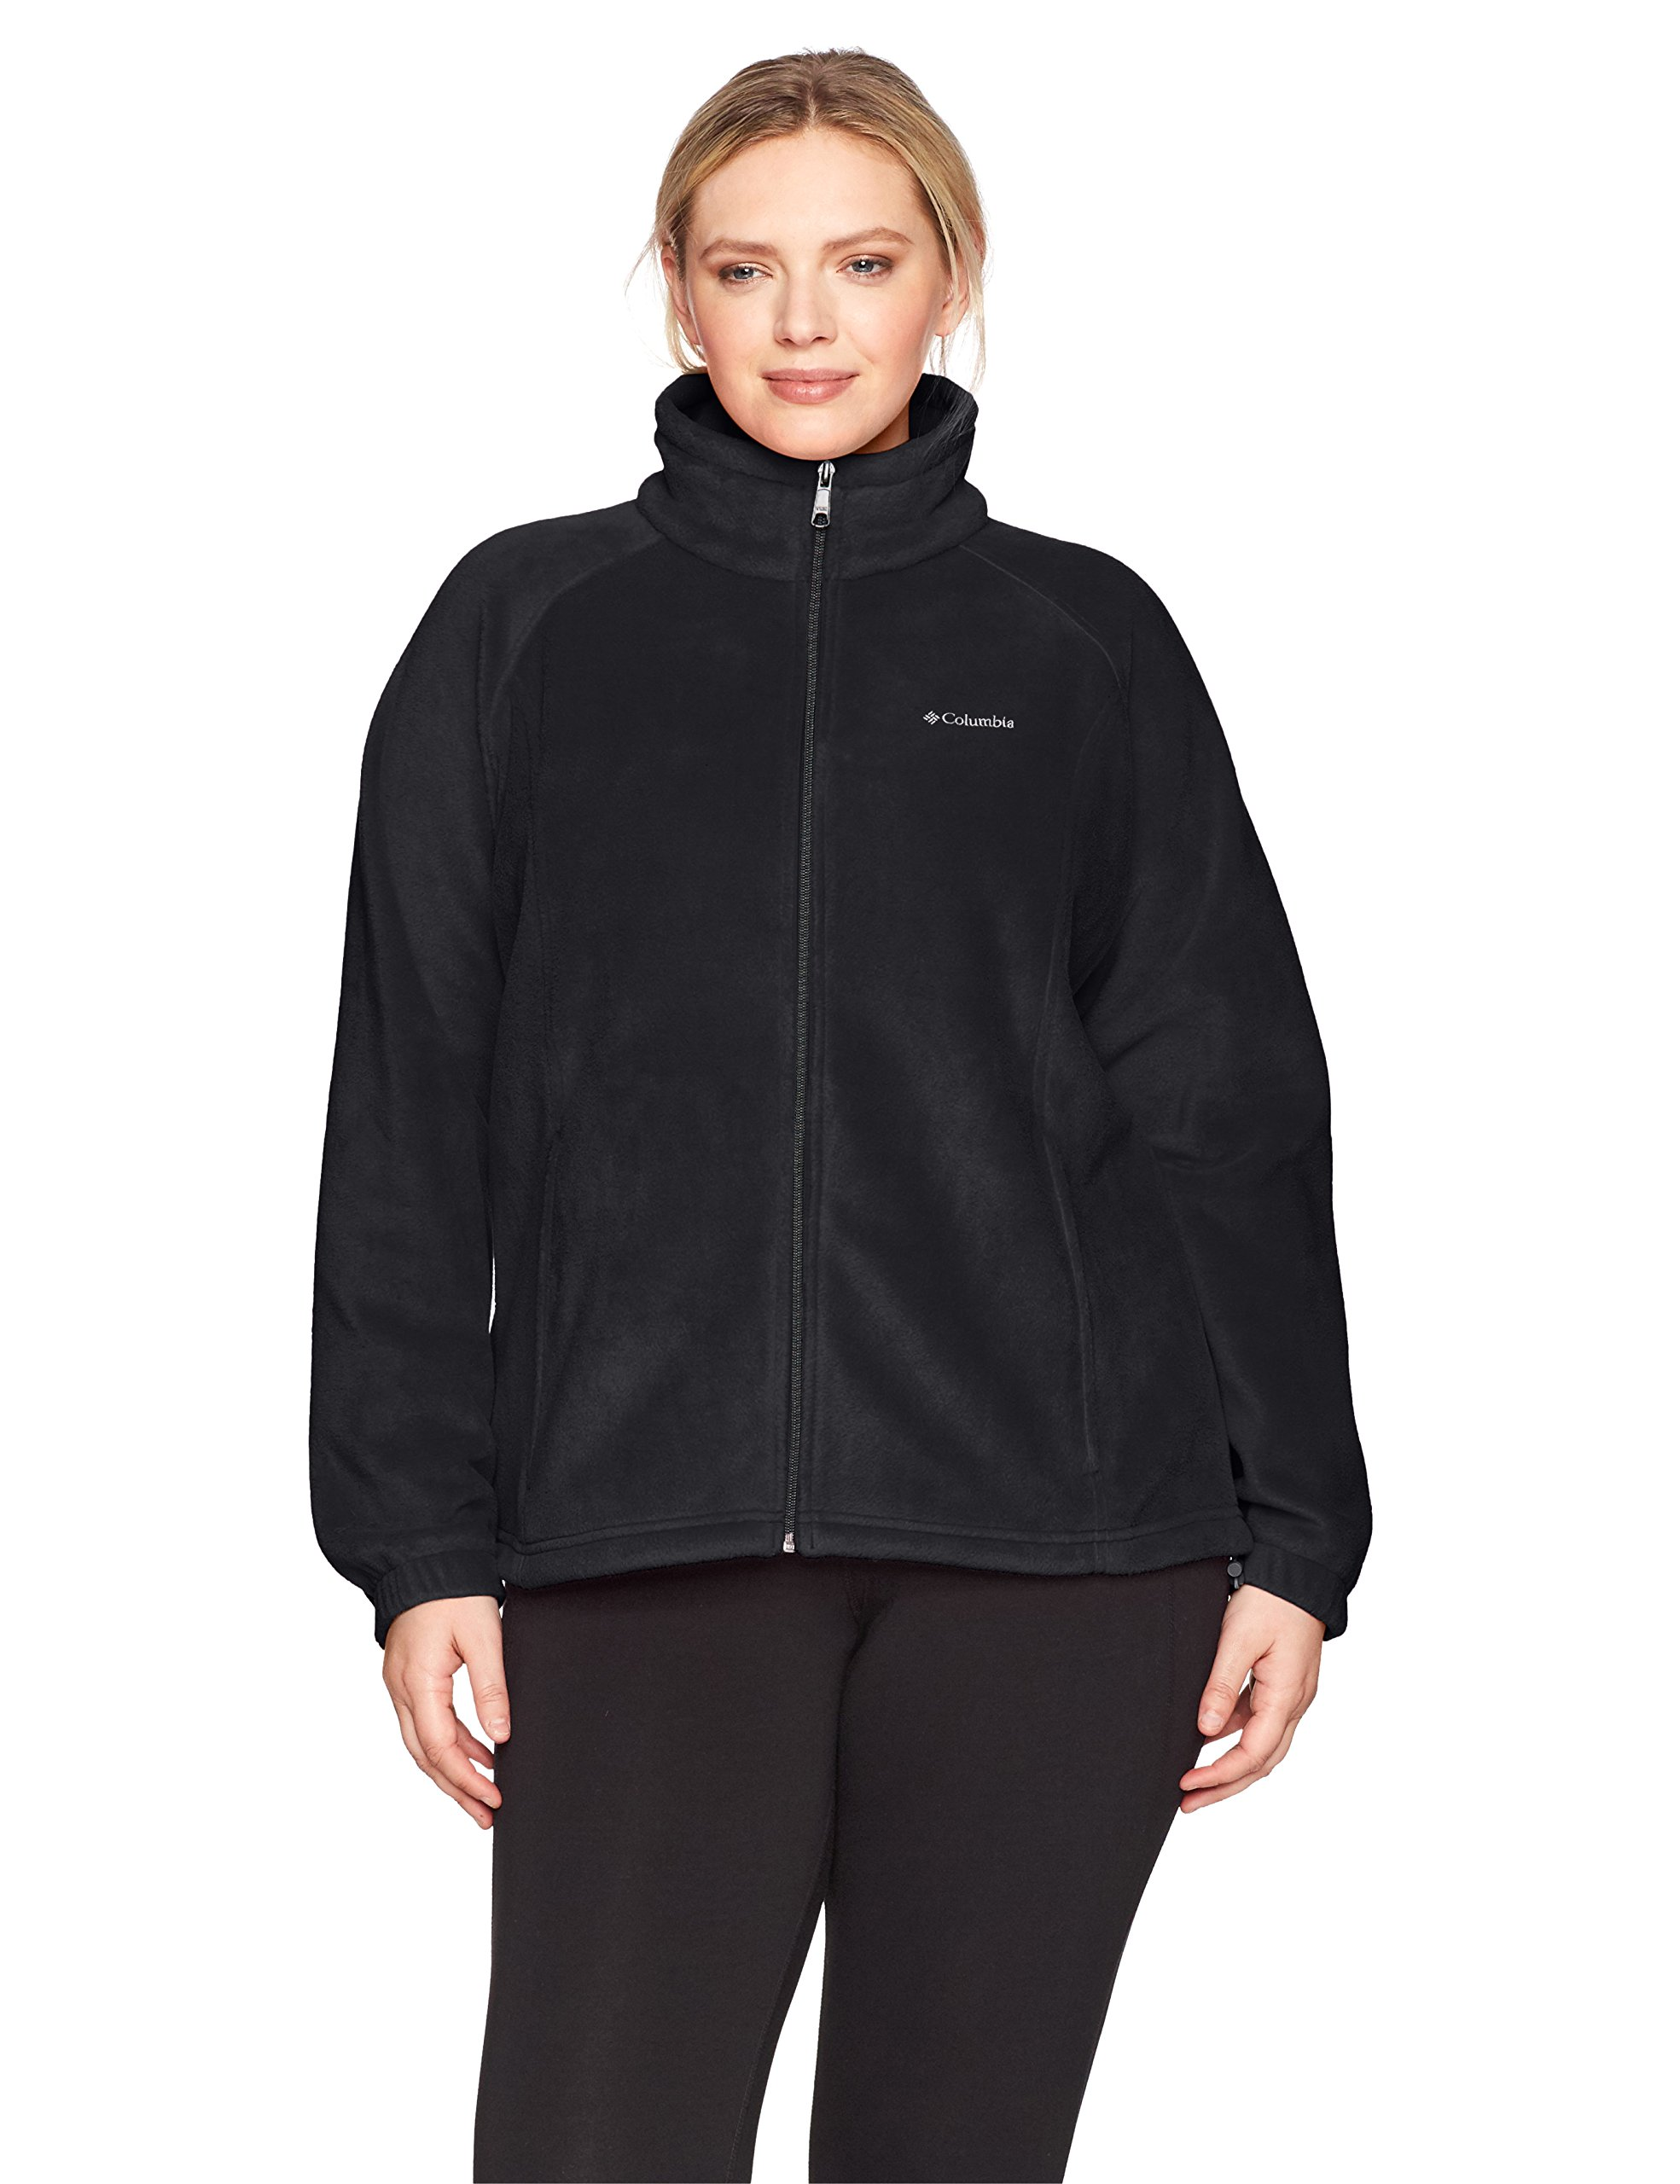 Columbia Women's SizeTested Fz Plus Size Tested Tough in Pink Benton Springs Full Zip Jacket, Black, 1X